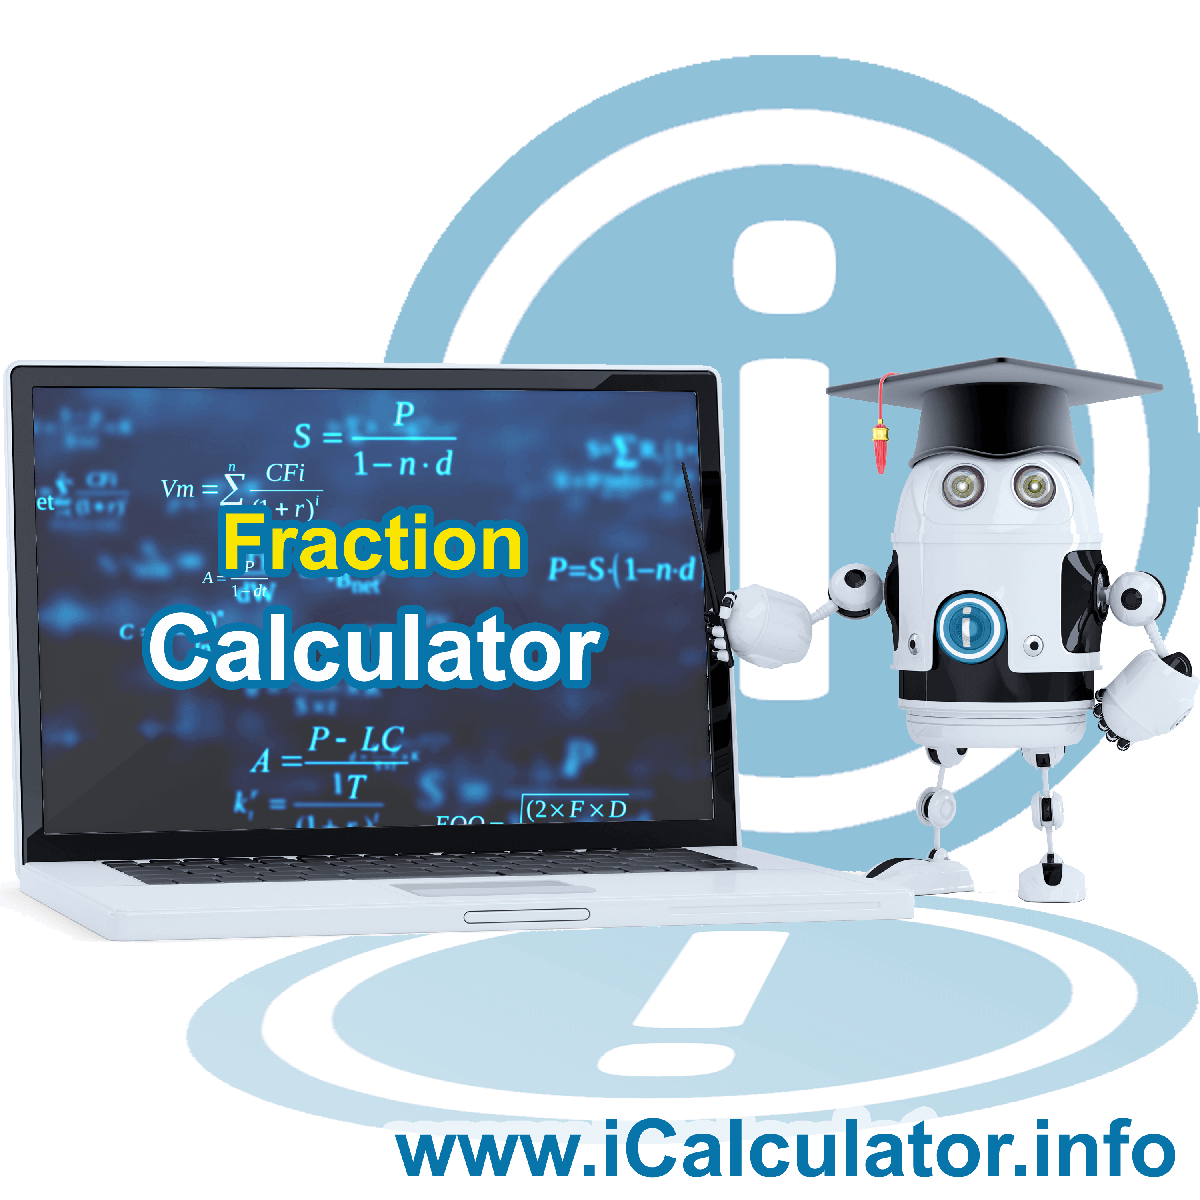 Fraction Calculator: This image show the calculator robot pointing to a screen with the formula for calculating fractions manually using fraction formulas.